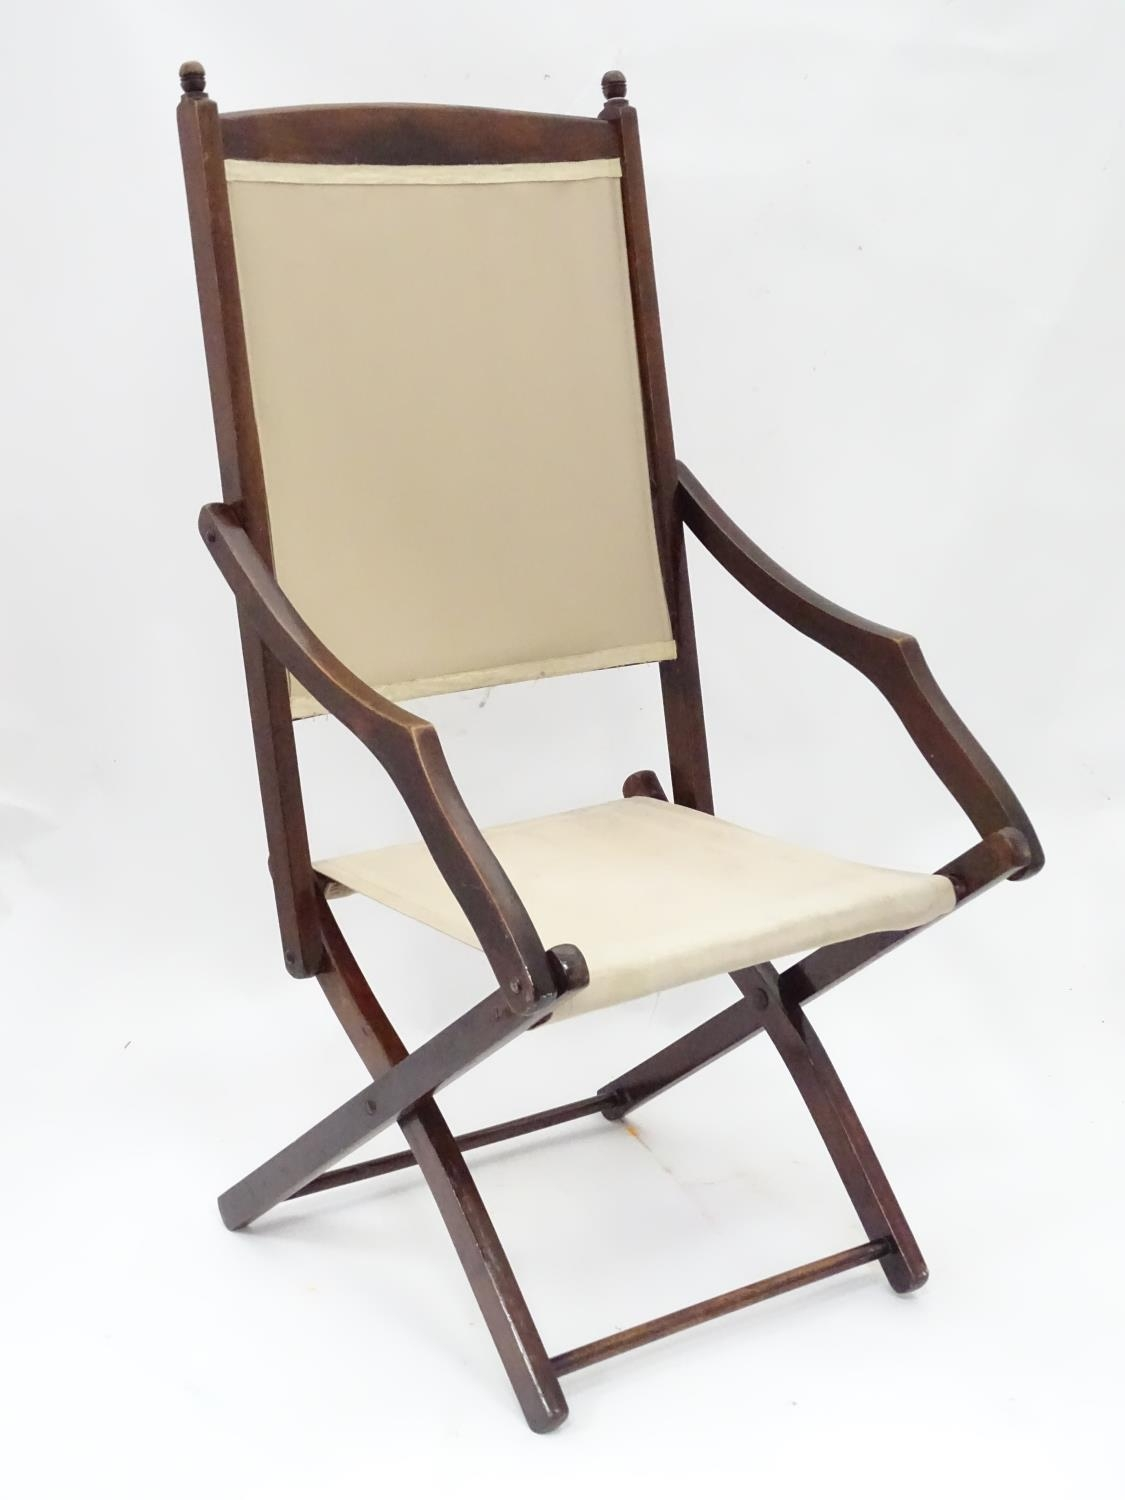 """A folding campaign / deck chair. Approx. 41"""" tall Please Note - we do not make reference to the - Image 5 of 5"""